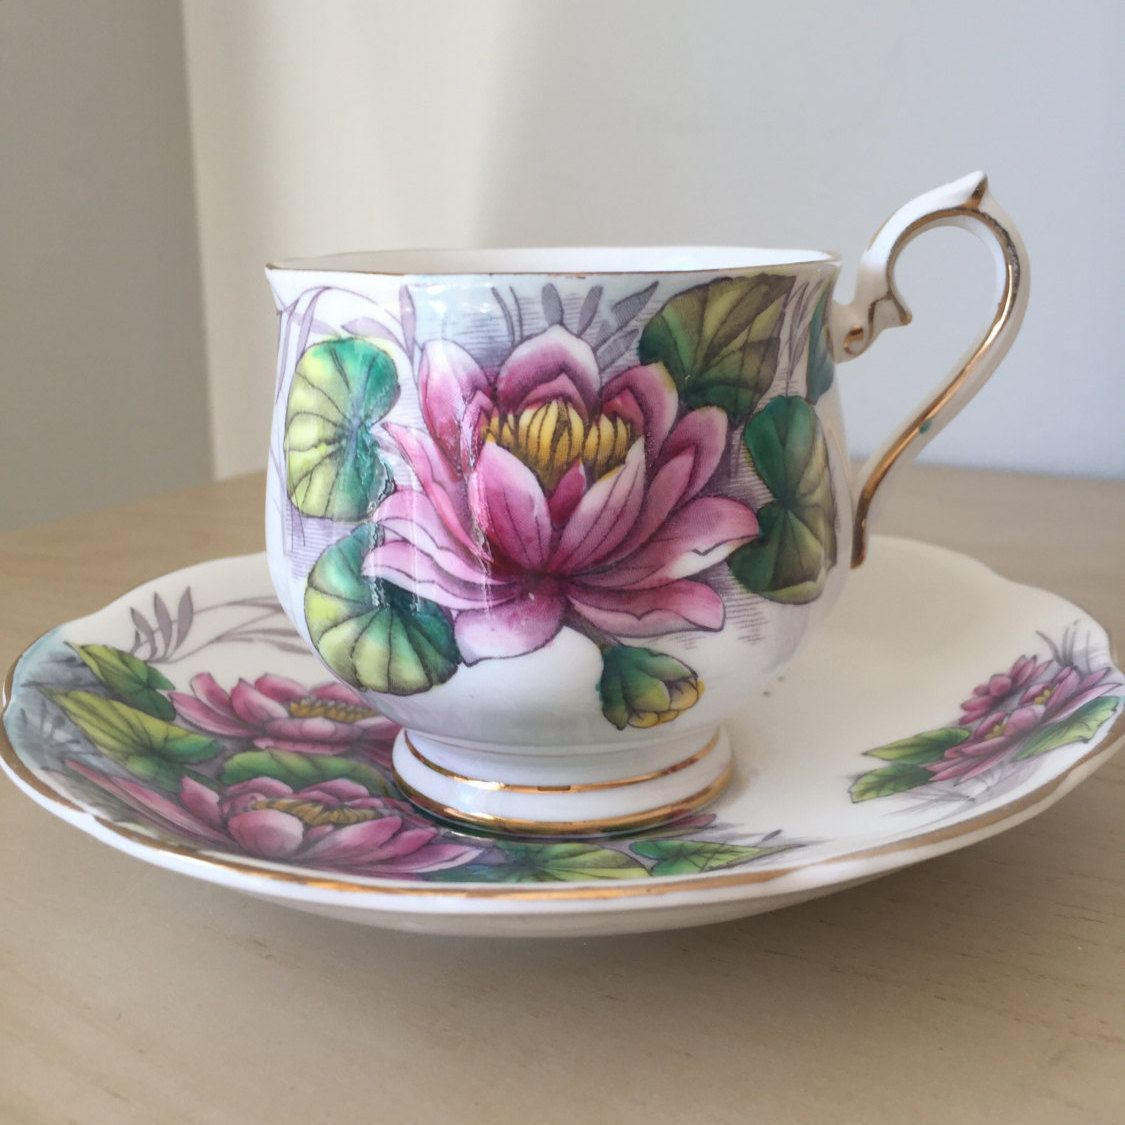 Royal albert water lily flower of the month series vintage teacup royal albert water lily flower of the month series vintage teacup and saucer july tea cup english pink purple floral bone china izmirmasajfo